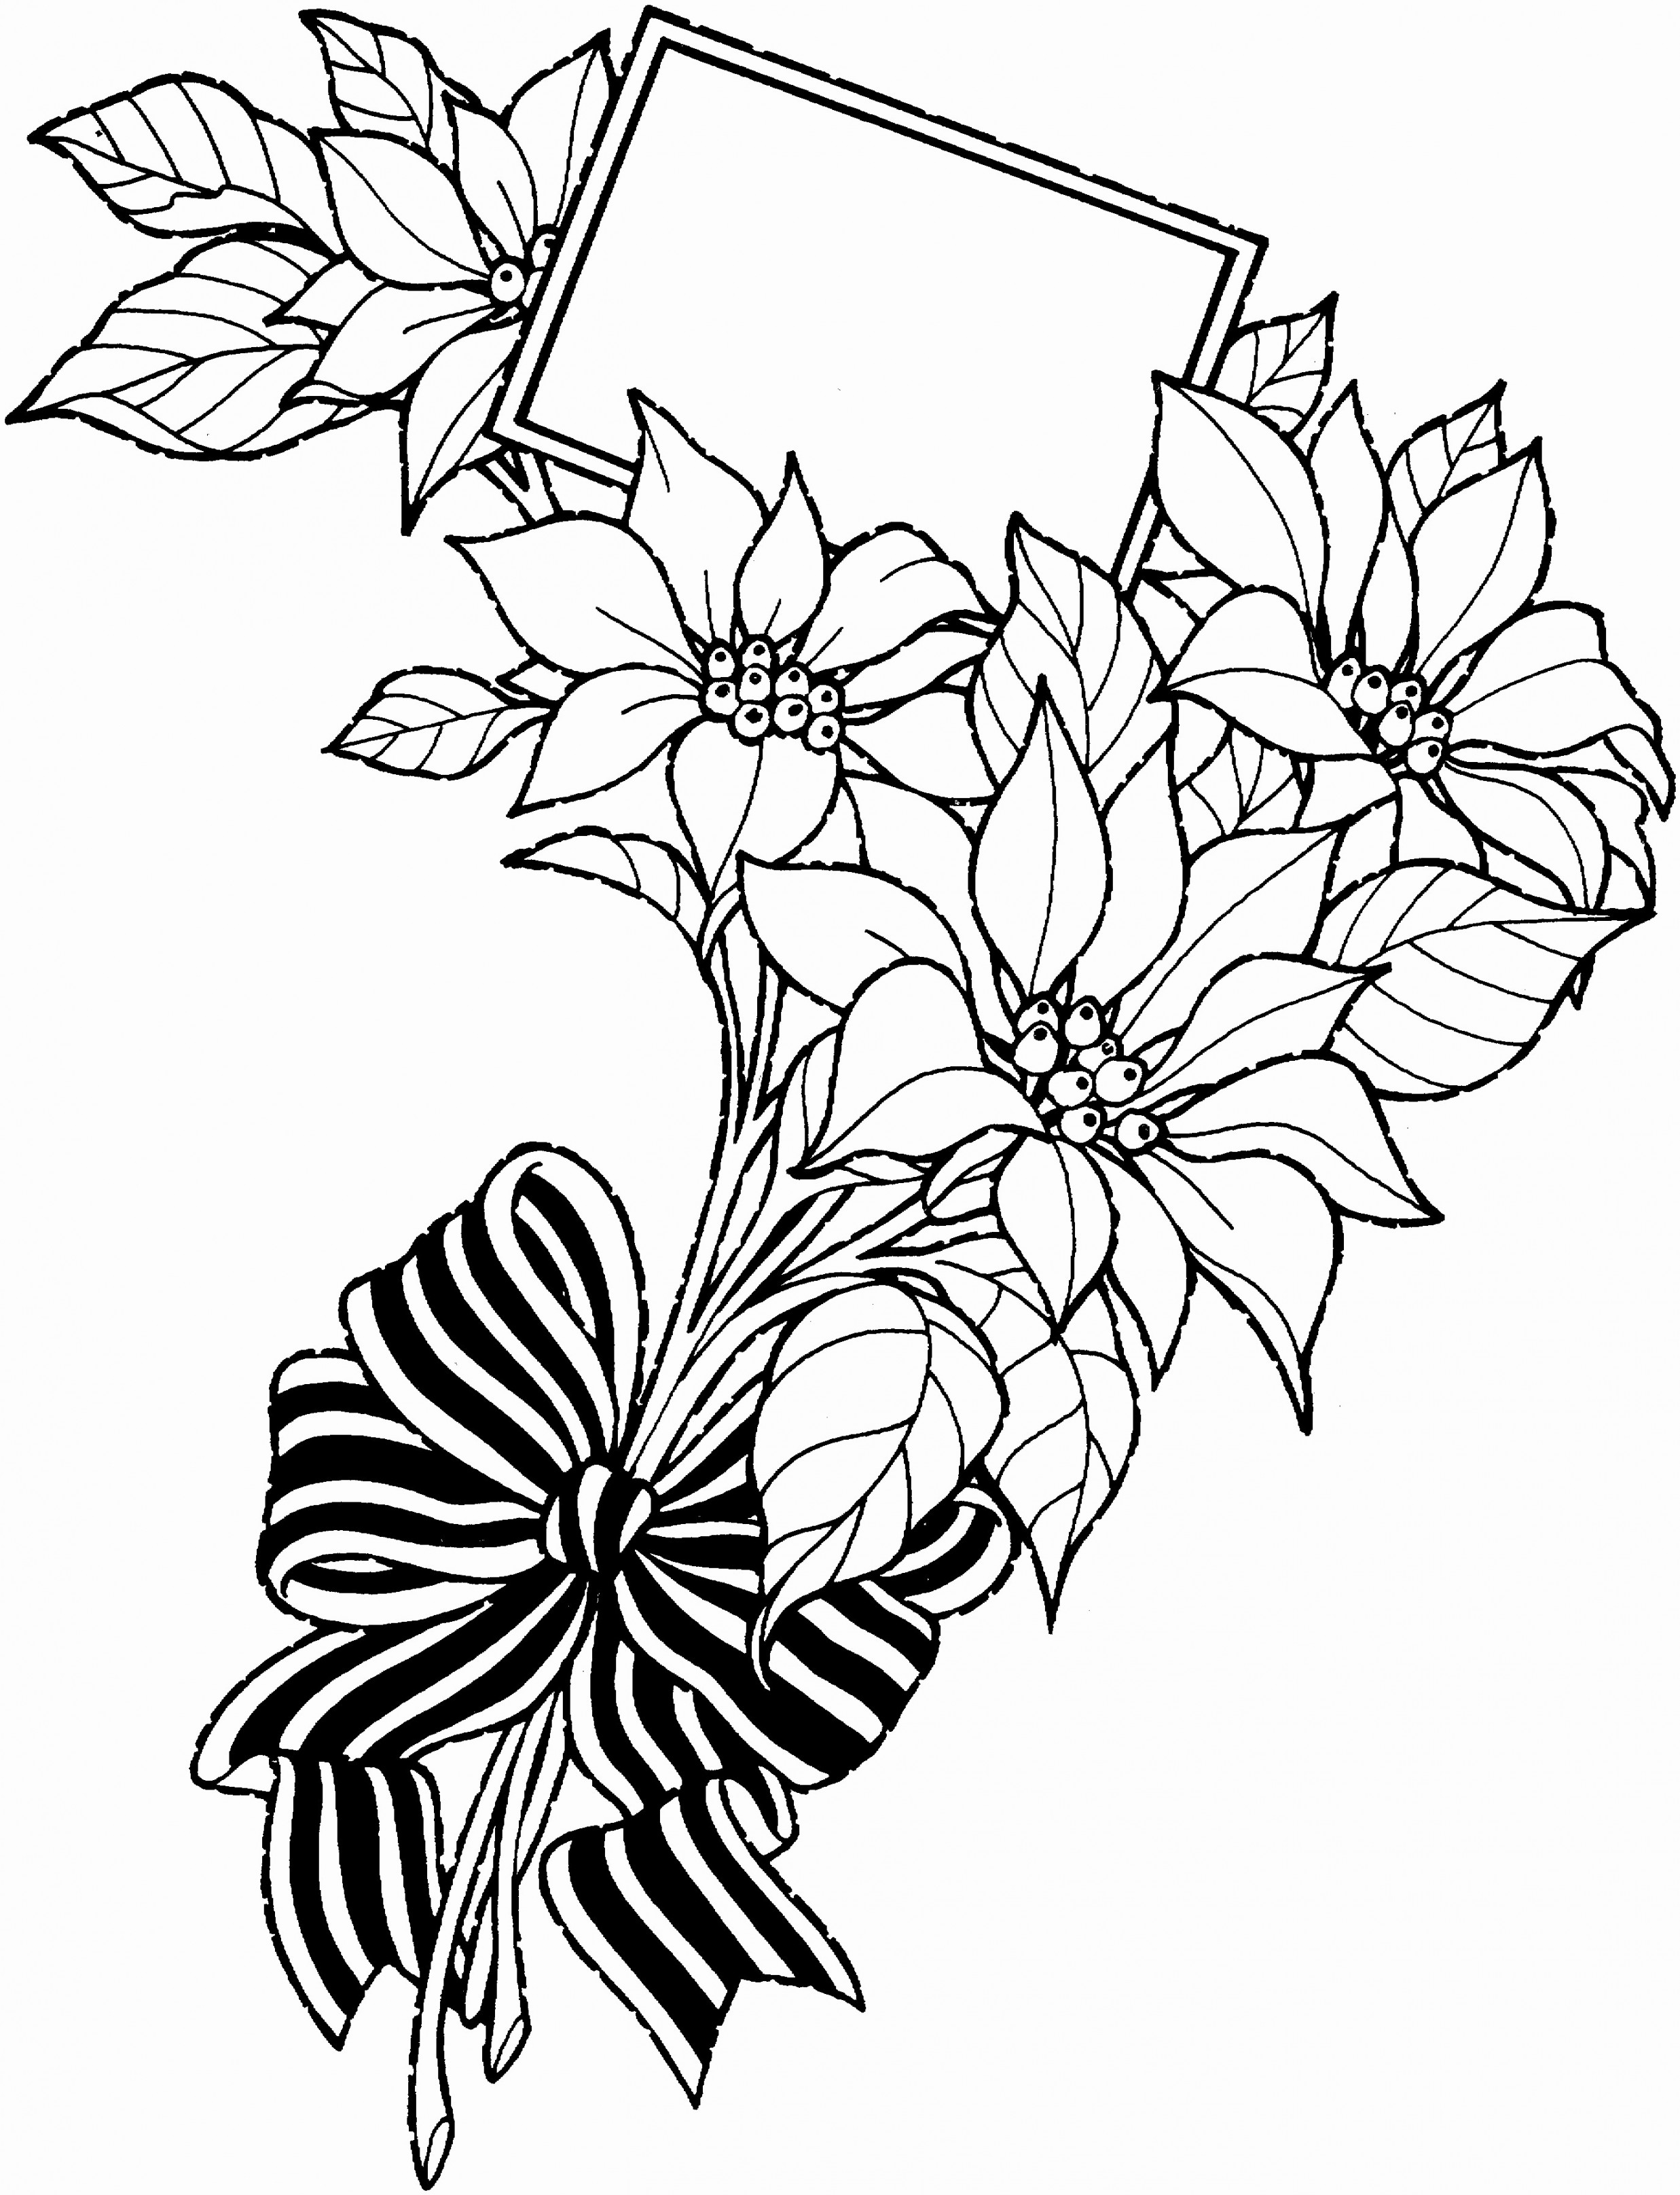 realistic rose flower coloring pages realistic rose drawing free download on clipartmag coloring pages flower rose realistic